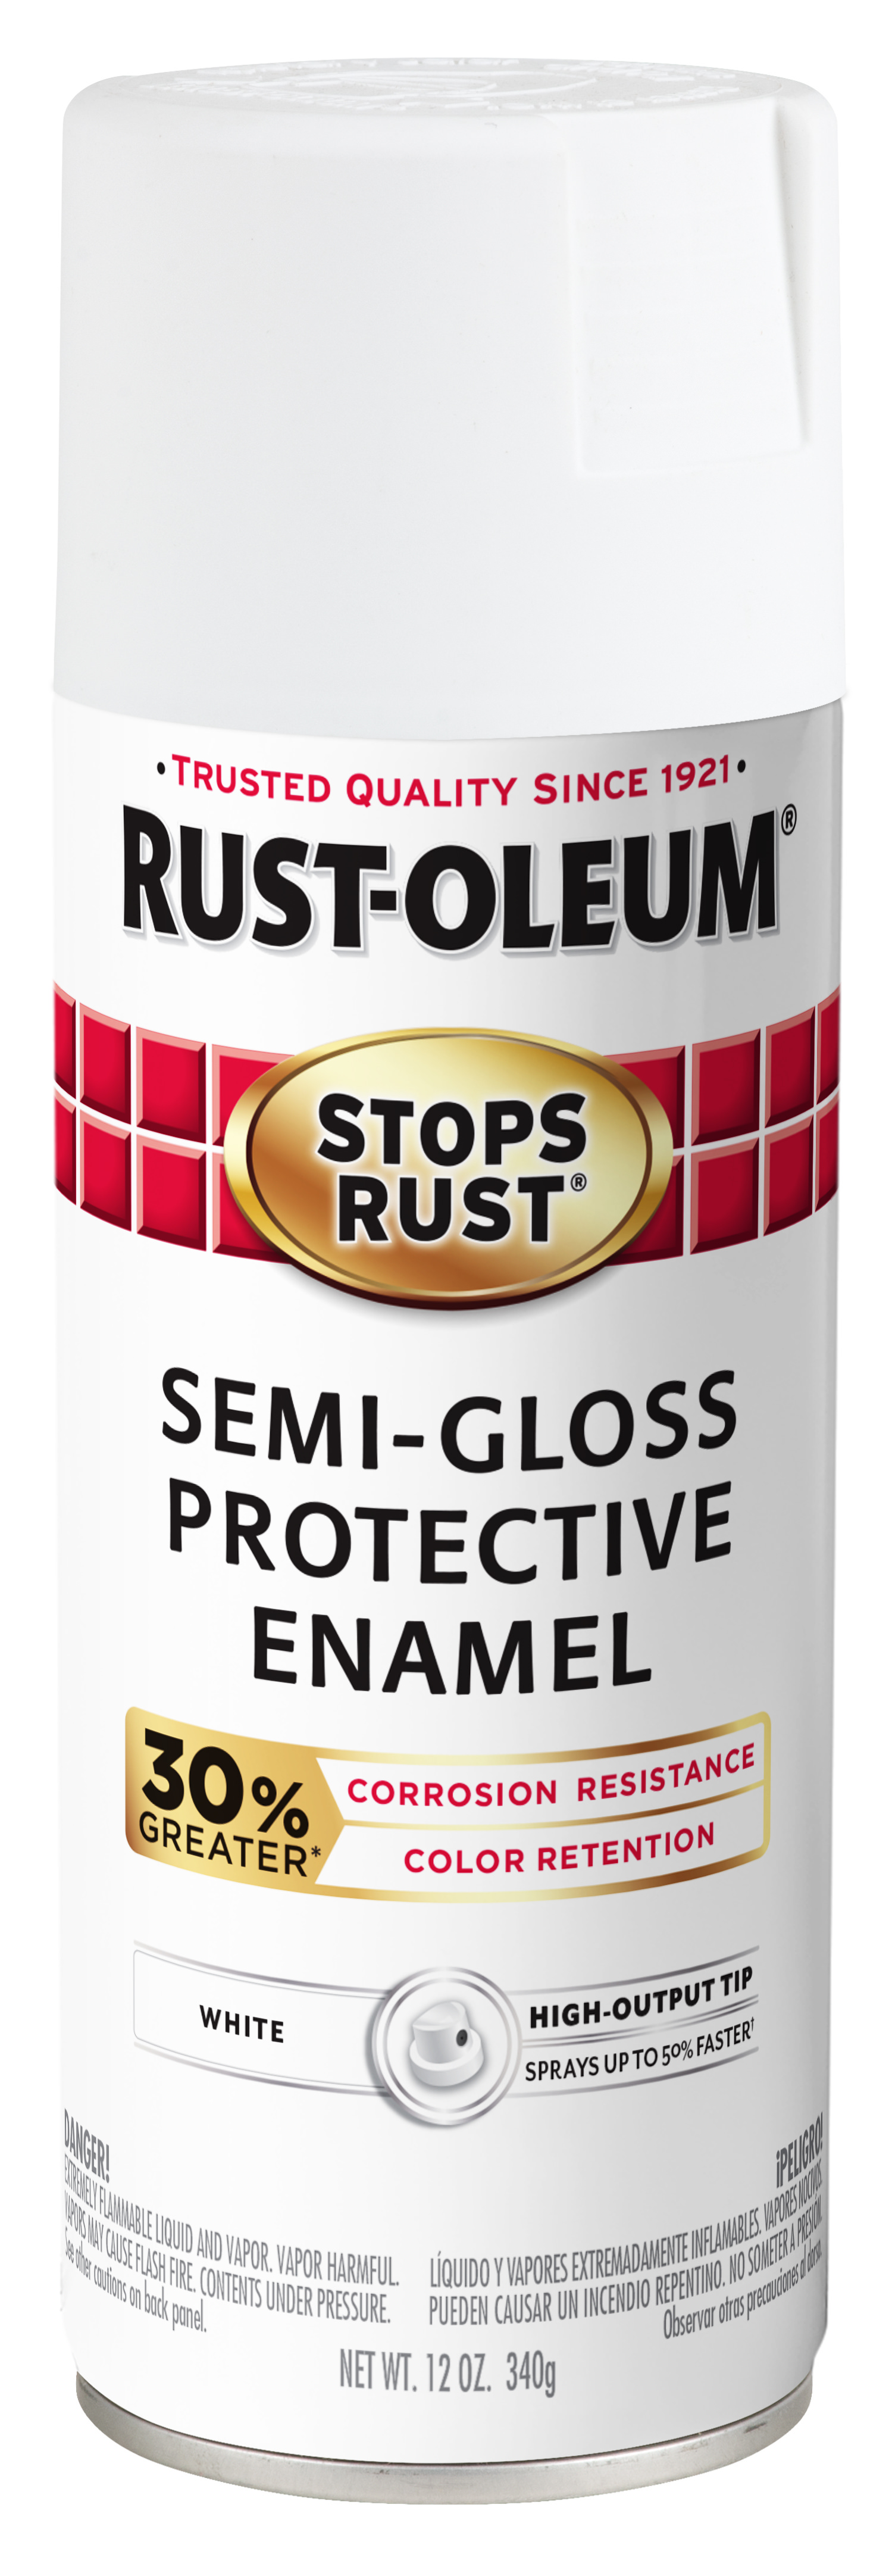 (3 Pack) Rust-Oleum Stops Rust Advanced Semi-Gloss White Protective Enamel Spray Paint, 12 oz